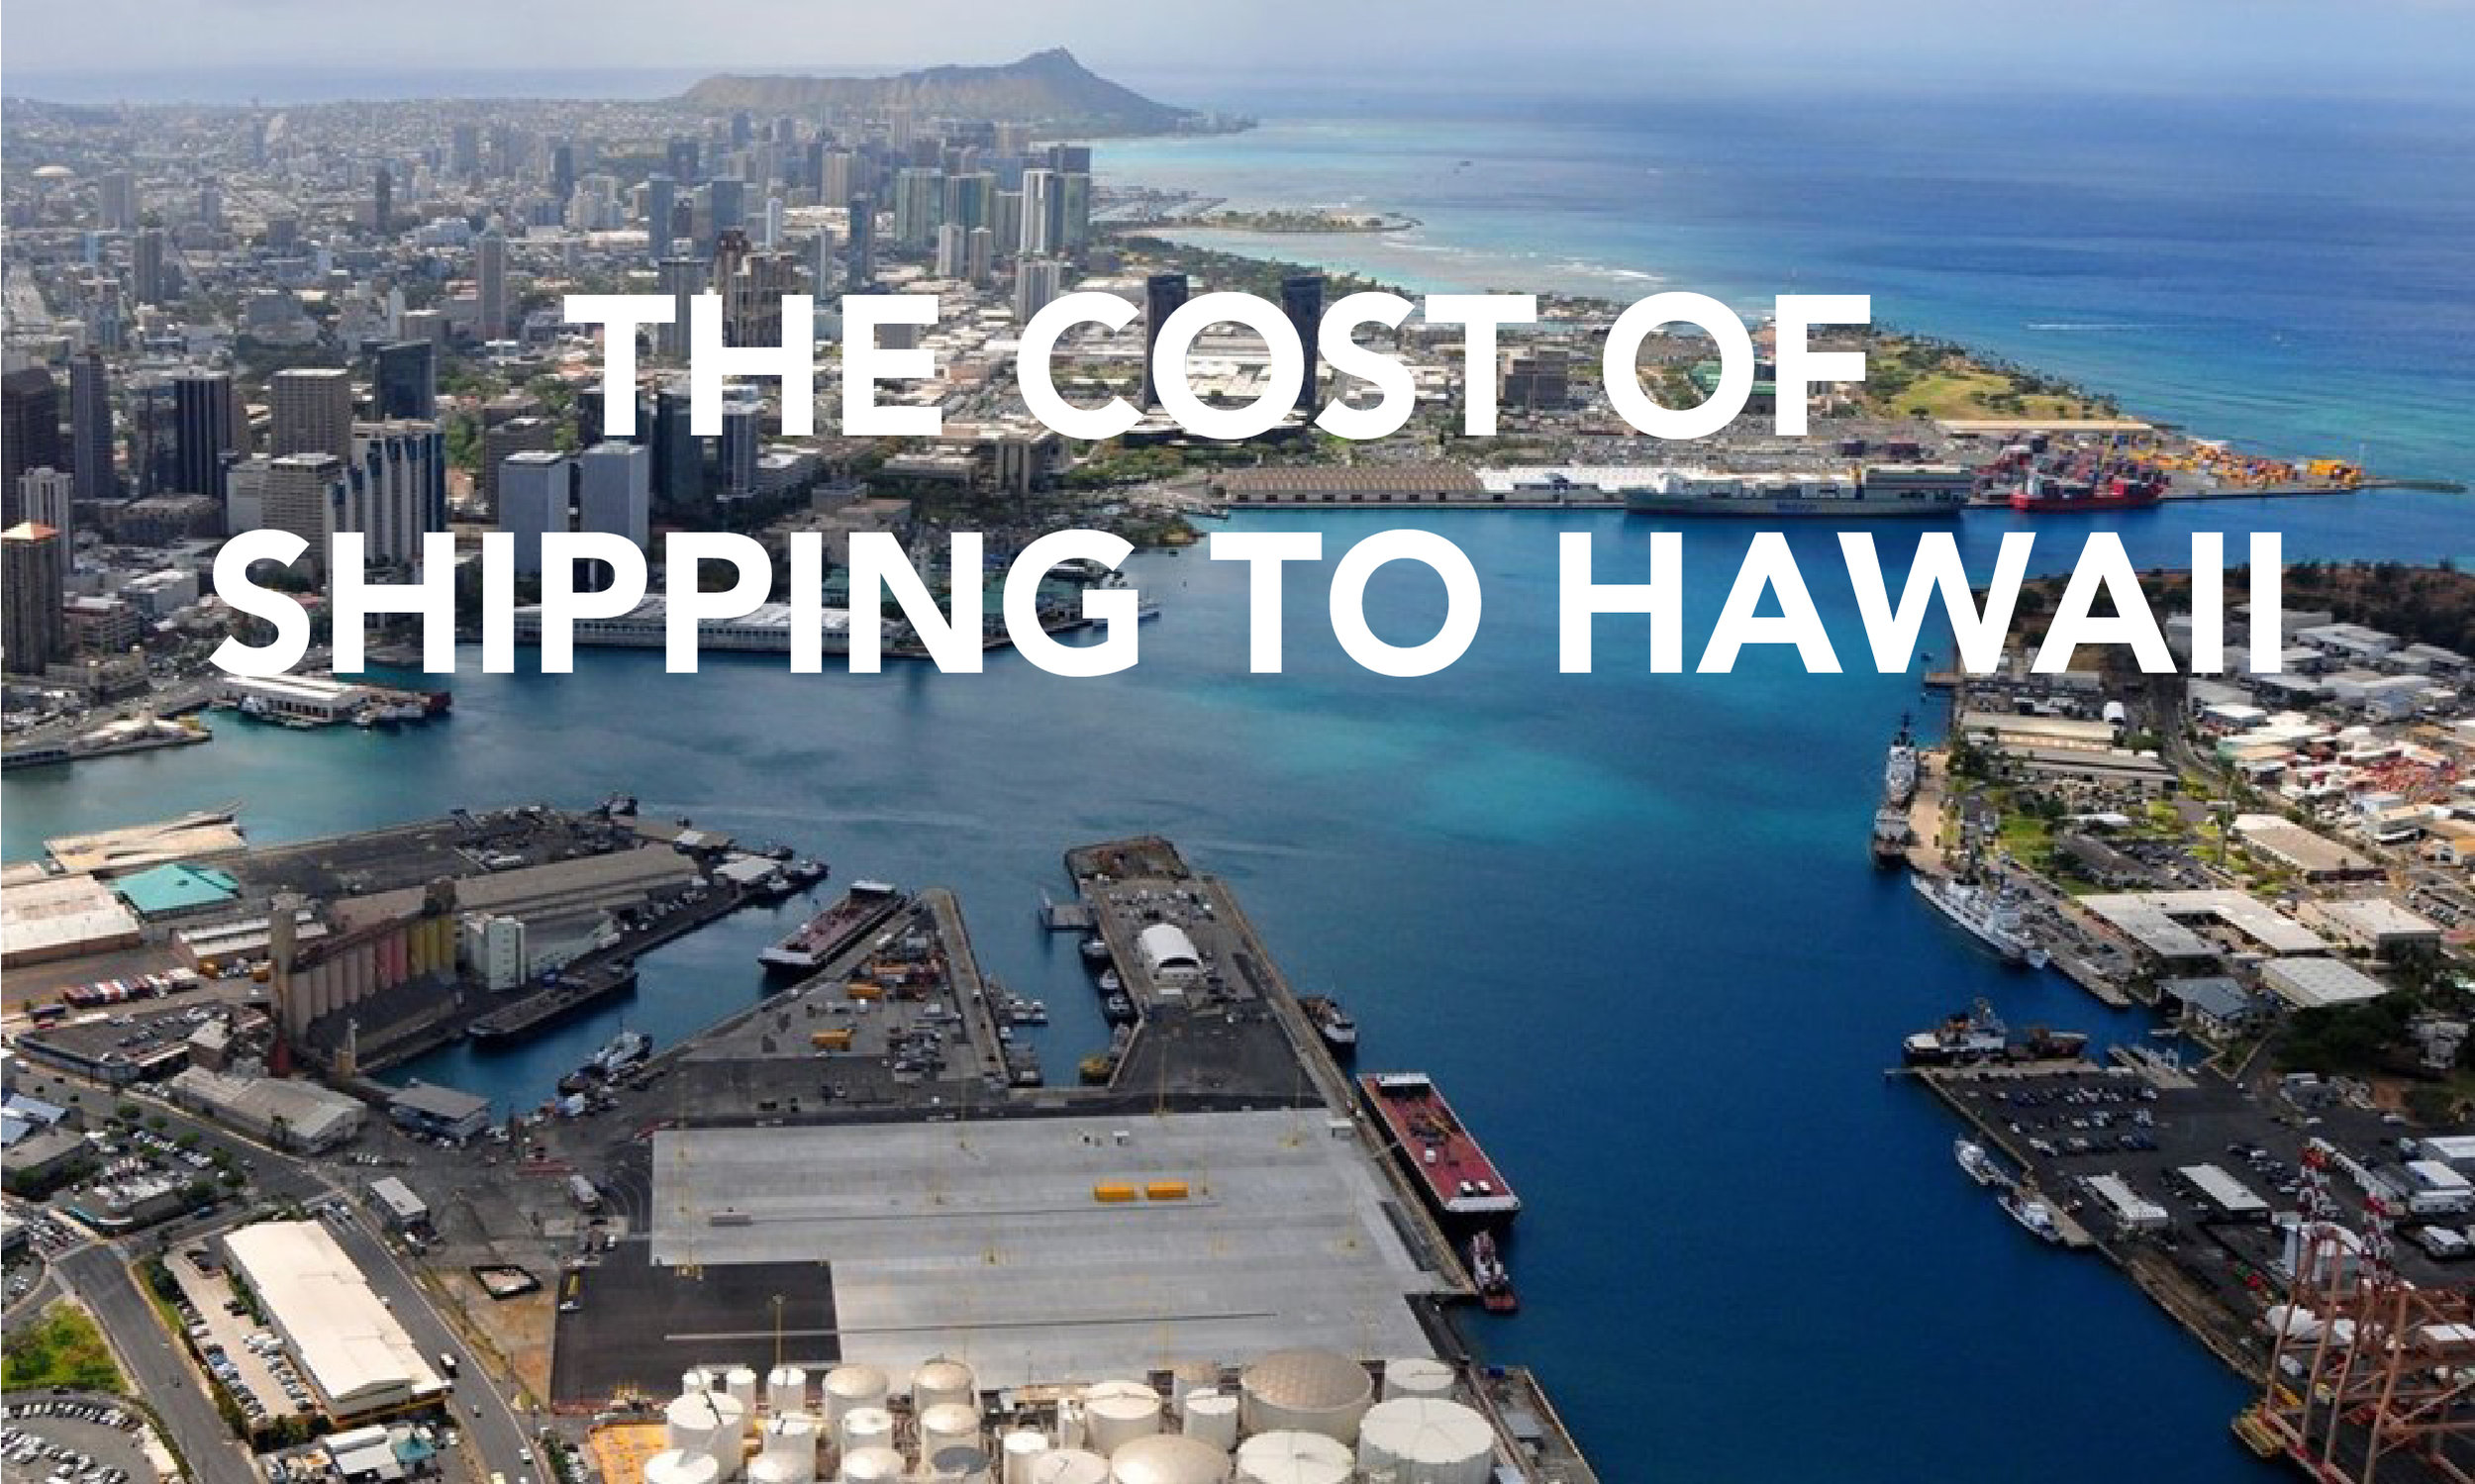 The Port of Honolulu. Can you find the ship in the harbor?